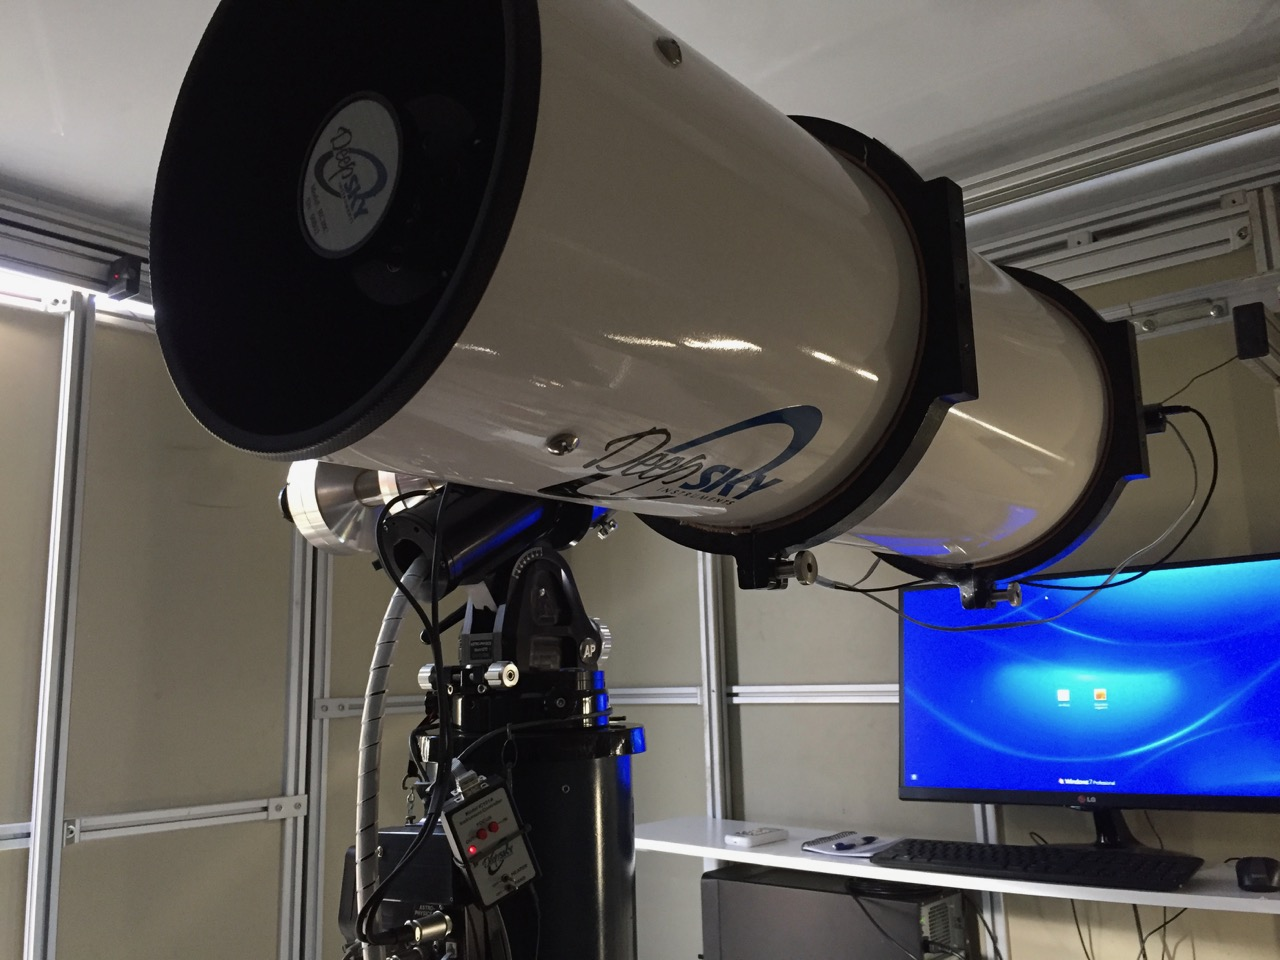 Scope parked, camera installed, sitting pretty ready to catch photons.